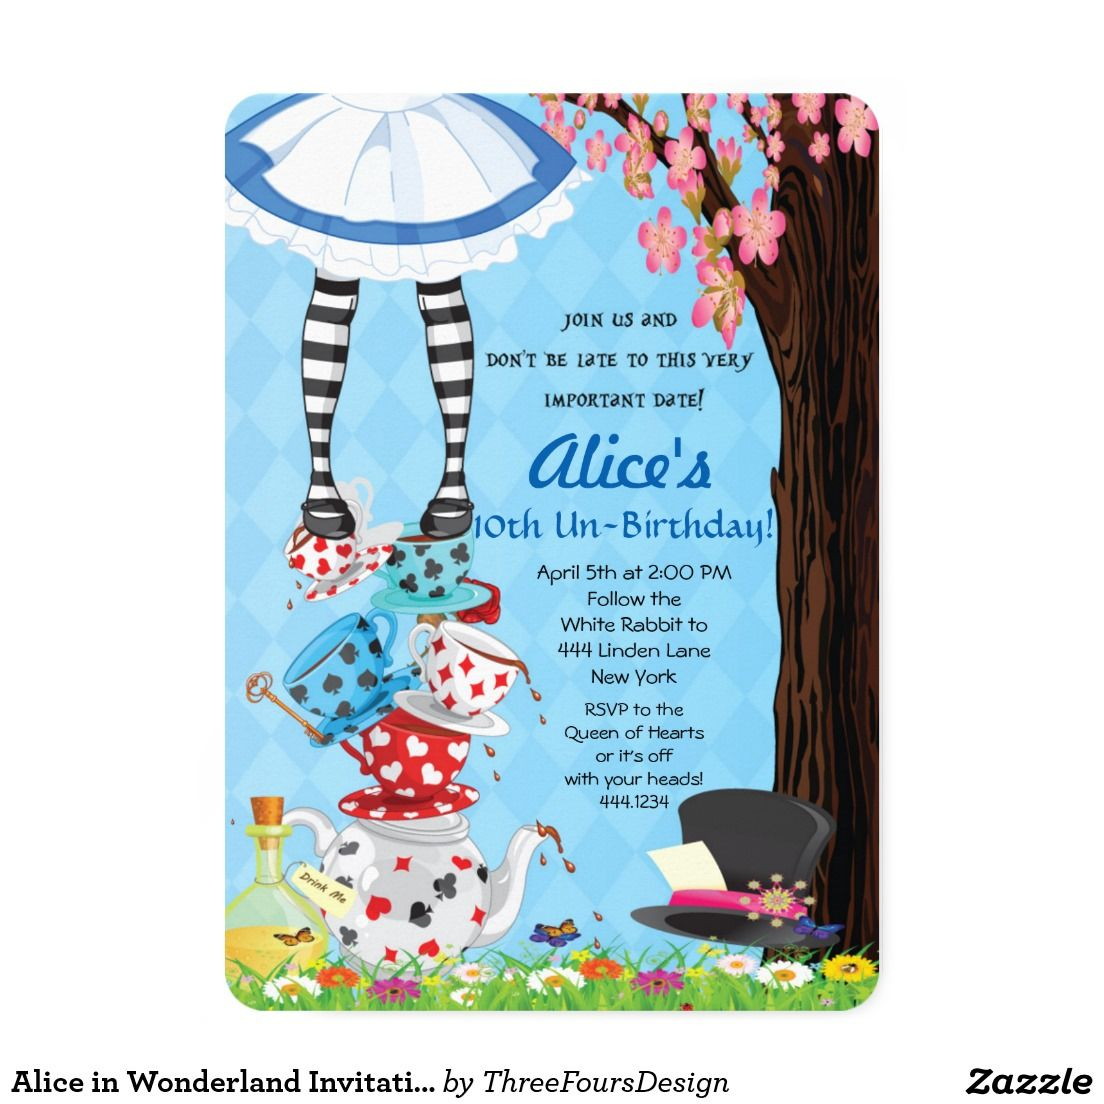 Alice in Wonderland Invitations | Alice, Wonderland party and Mad ...